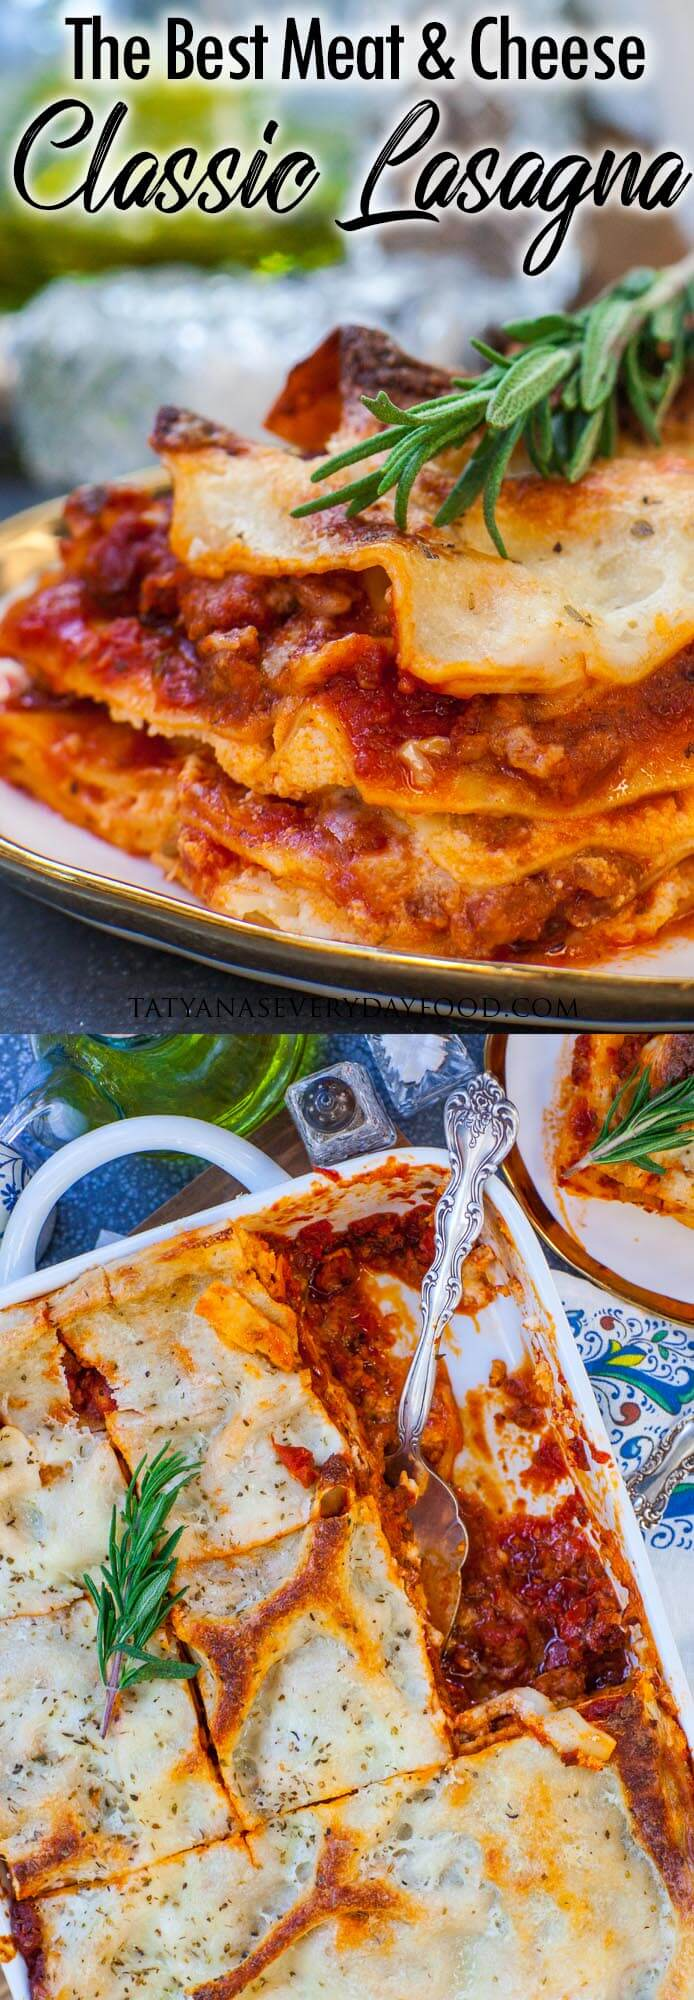 The Best Meat and Cheese Lasagna